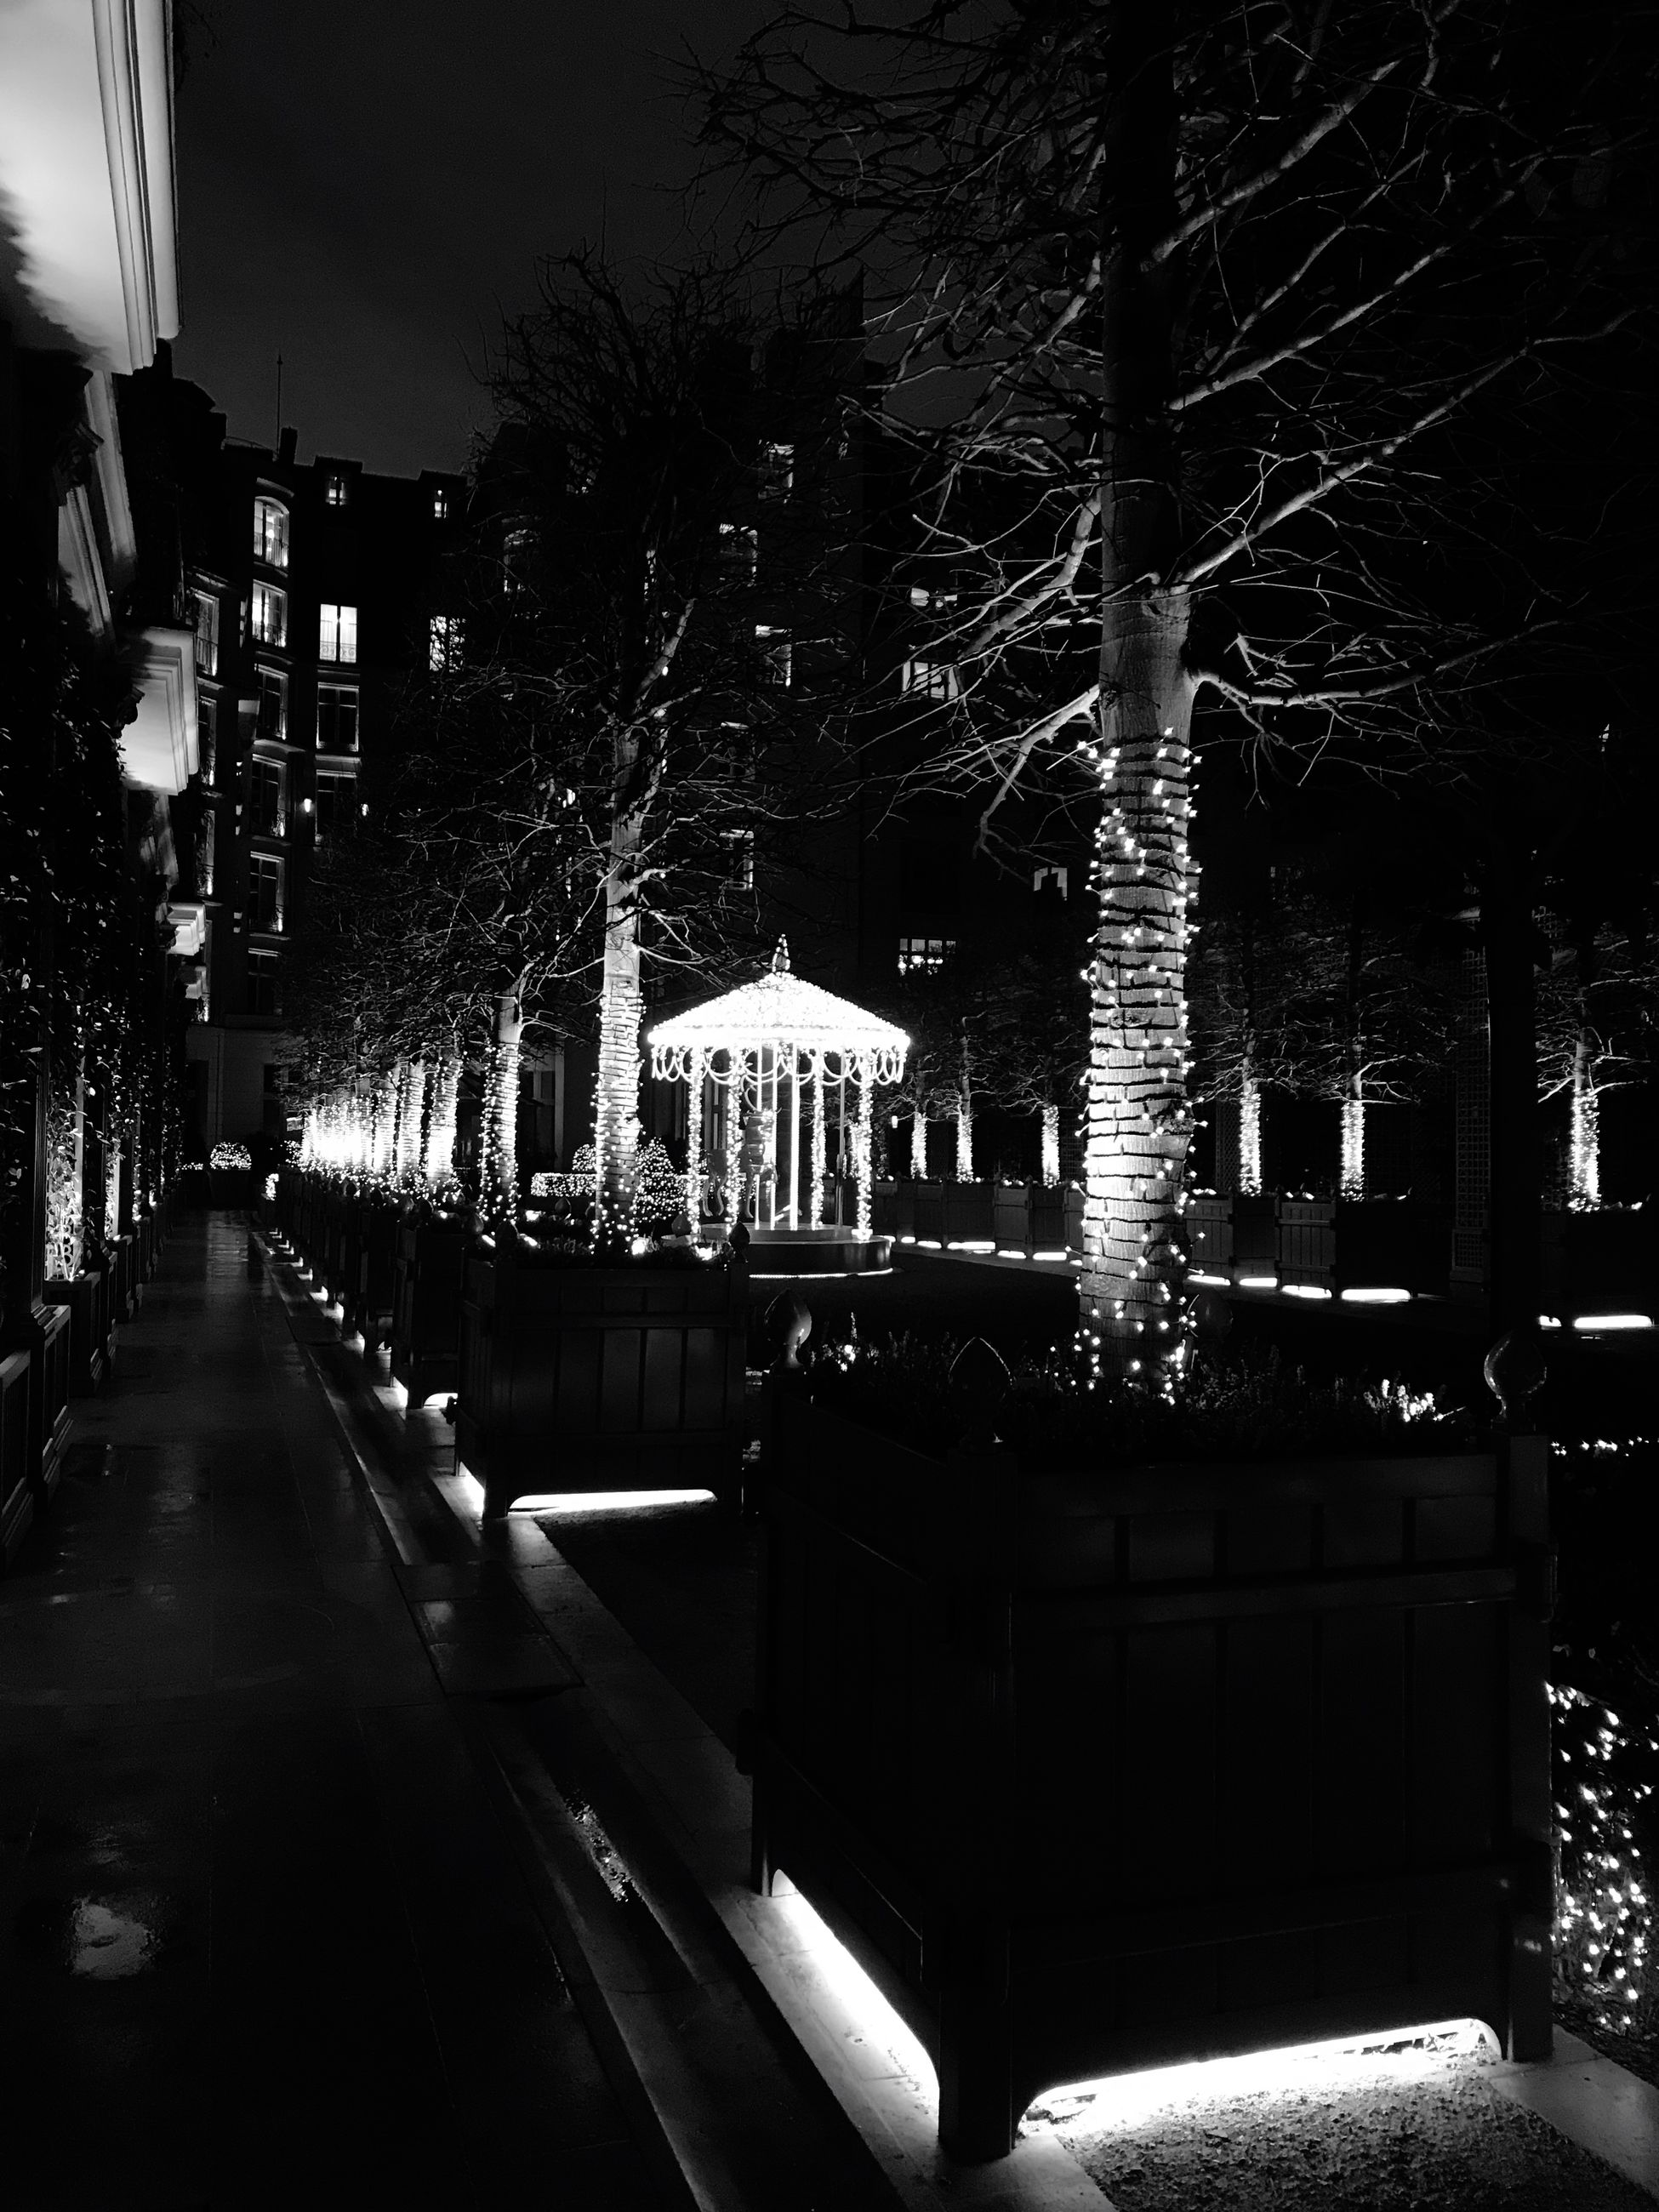 building exterior, tree, night, architecture, built structure, illuminated, outdoors, city, bare tree, no people, sky, nature